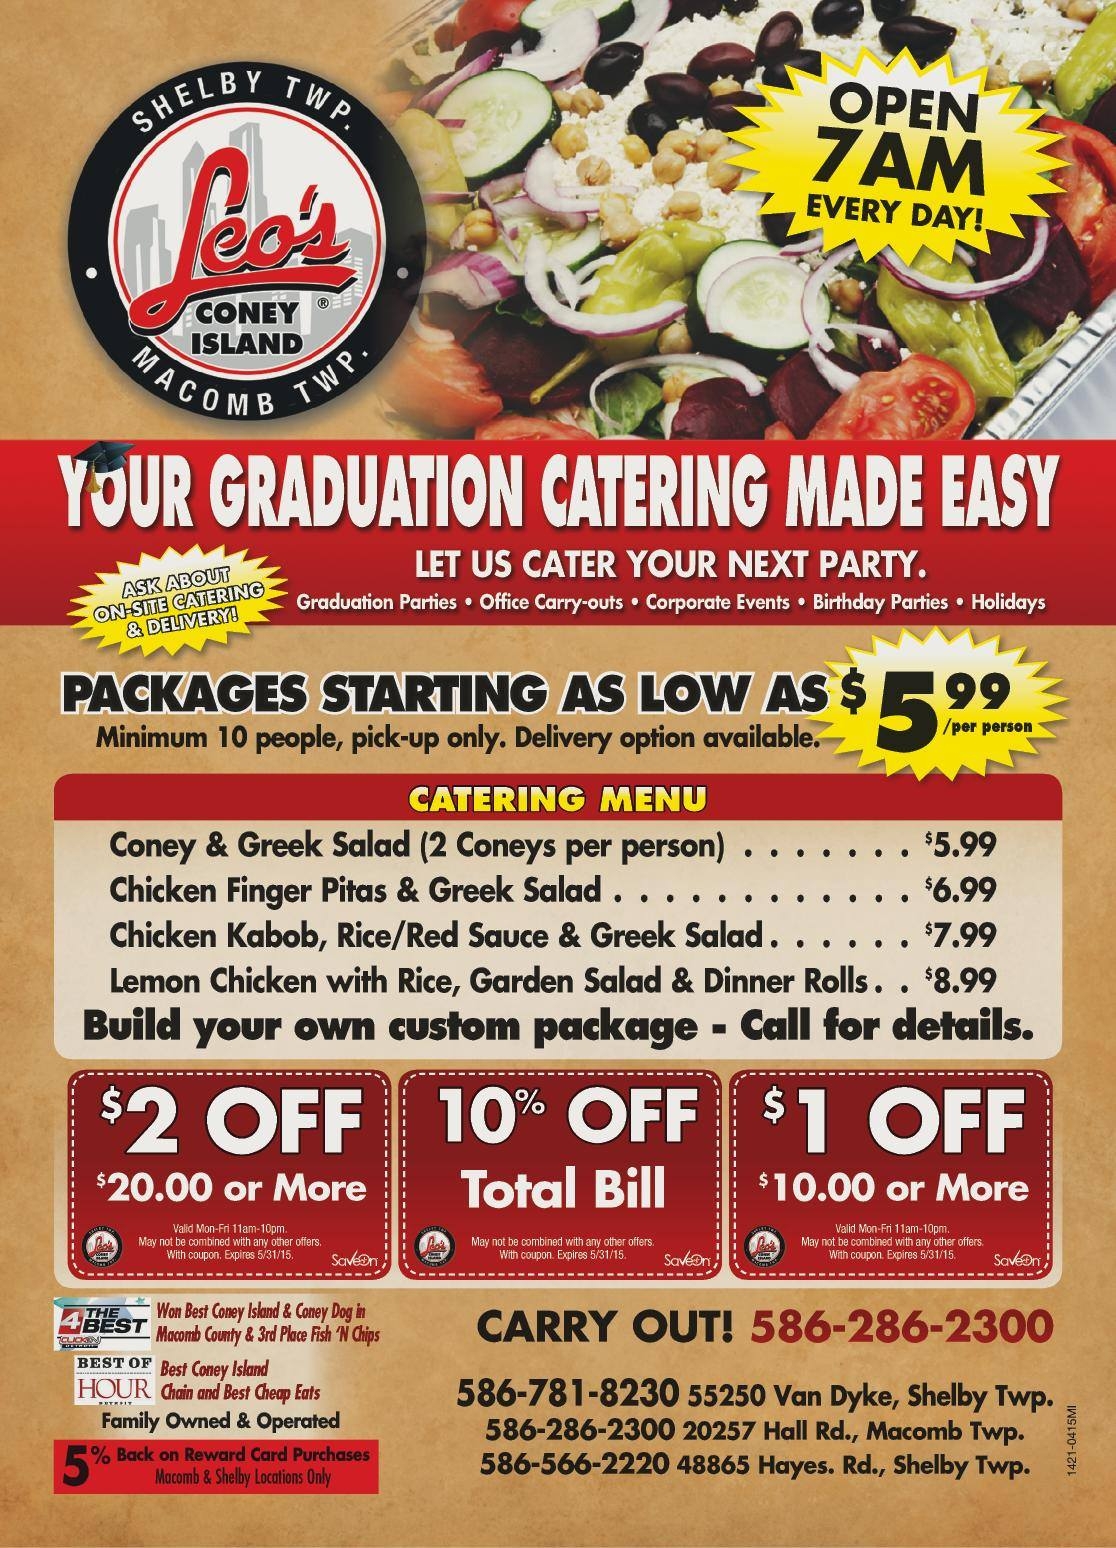 image regarding Papa Vinos Coupons Printable named Leos coney island discount coupons macomb : Spongebob discount coupons